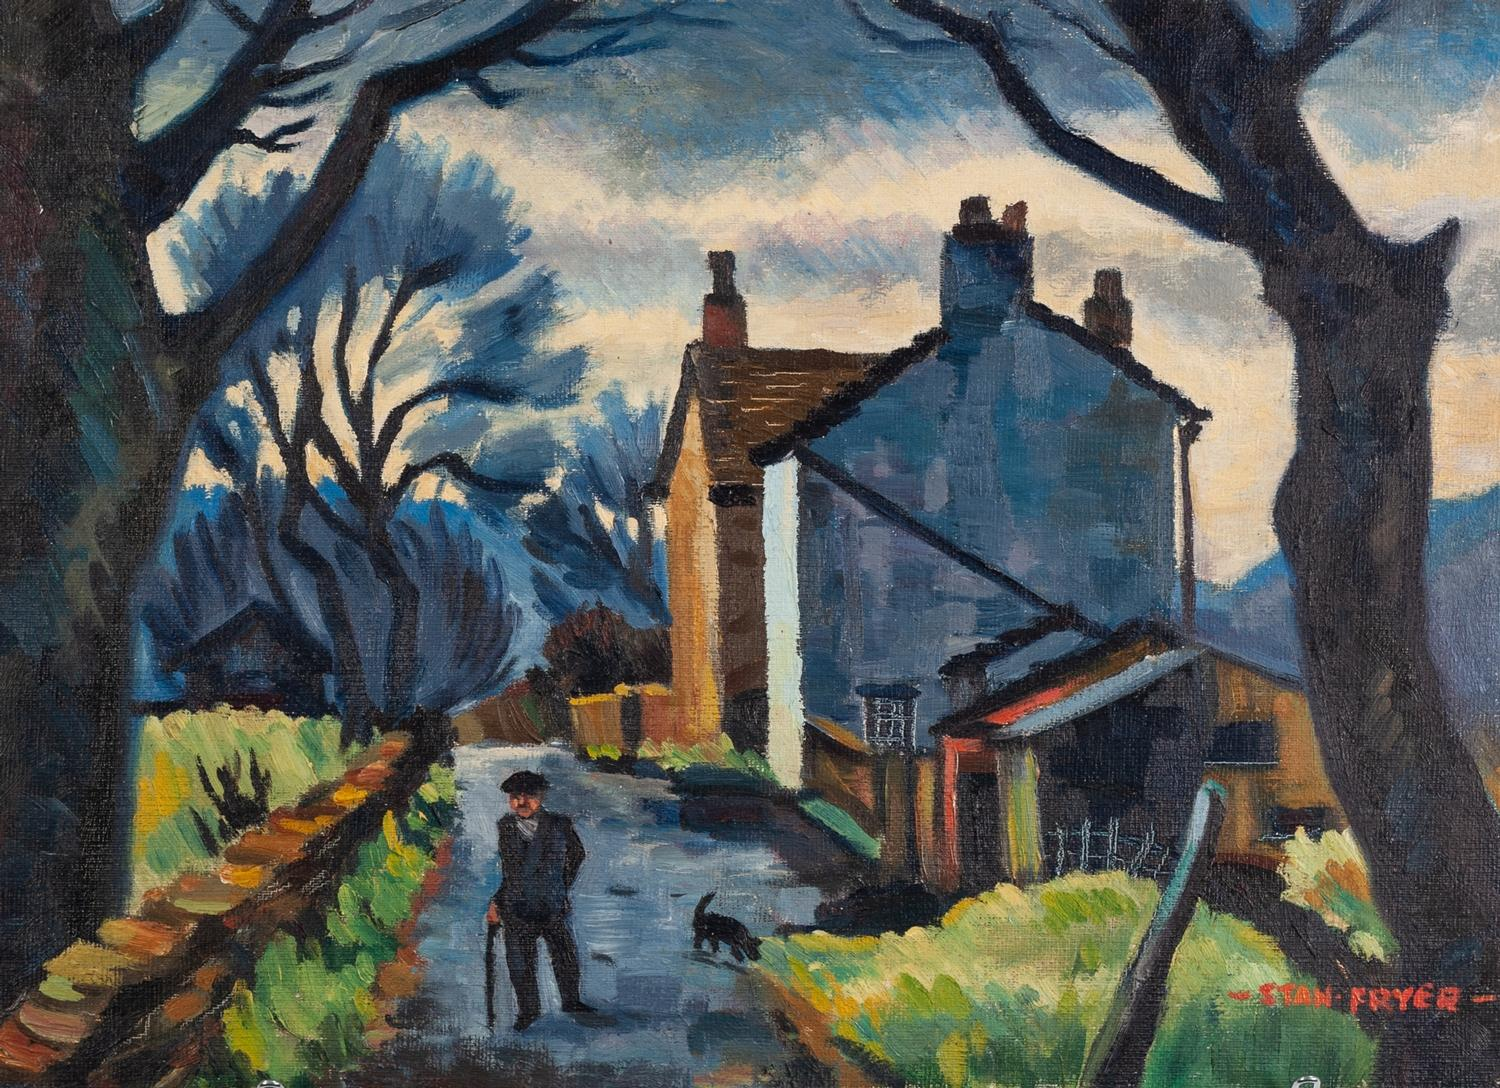 Lot 40 - STANLEY FRYER (1906 - 1983) OIL PAINTING ON BOARD 'Long Lane, Cheshire' Signed lower right, titled